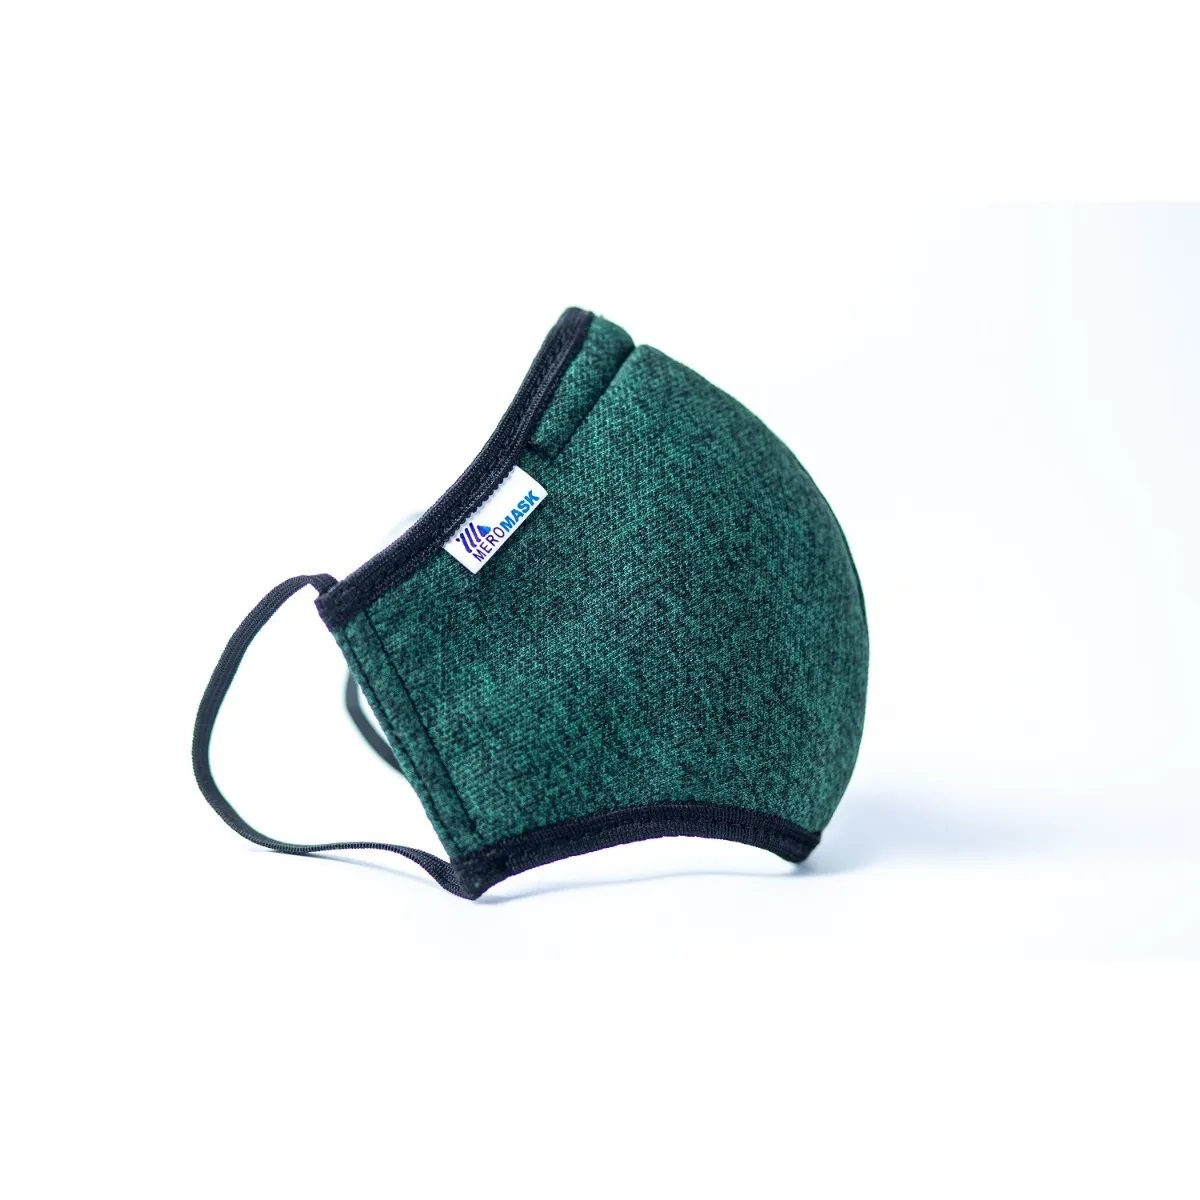 Mero Mask Green Without Filter For Women